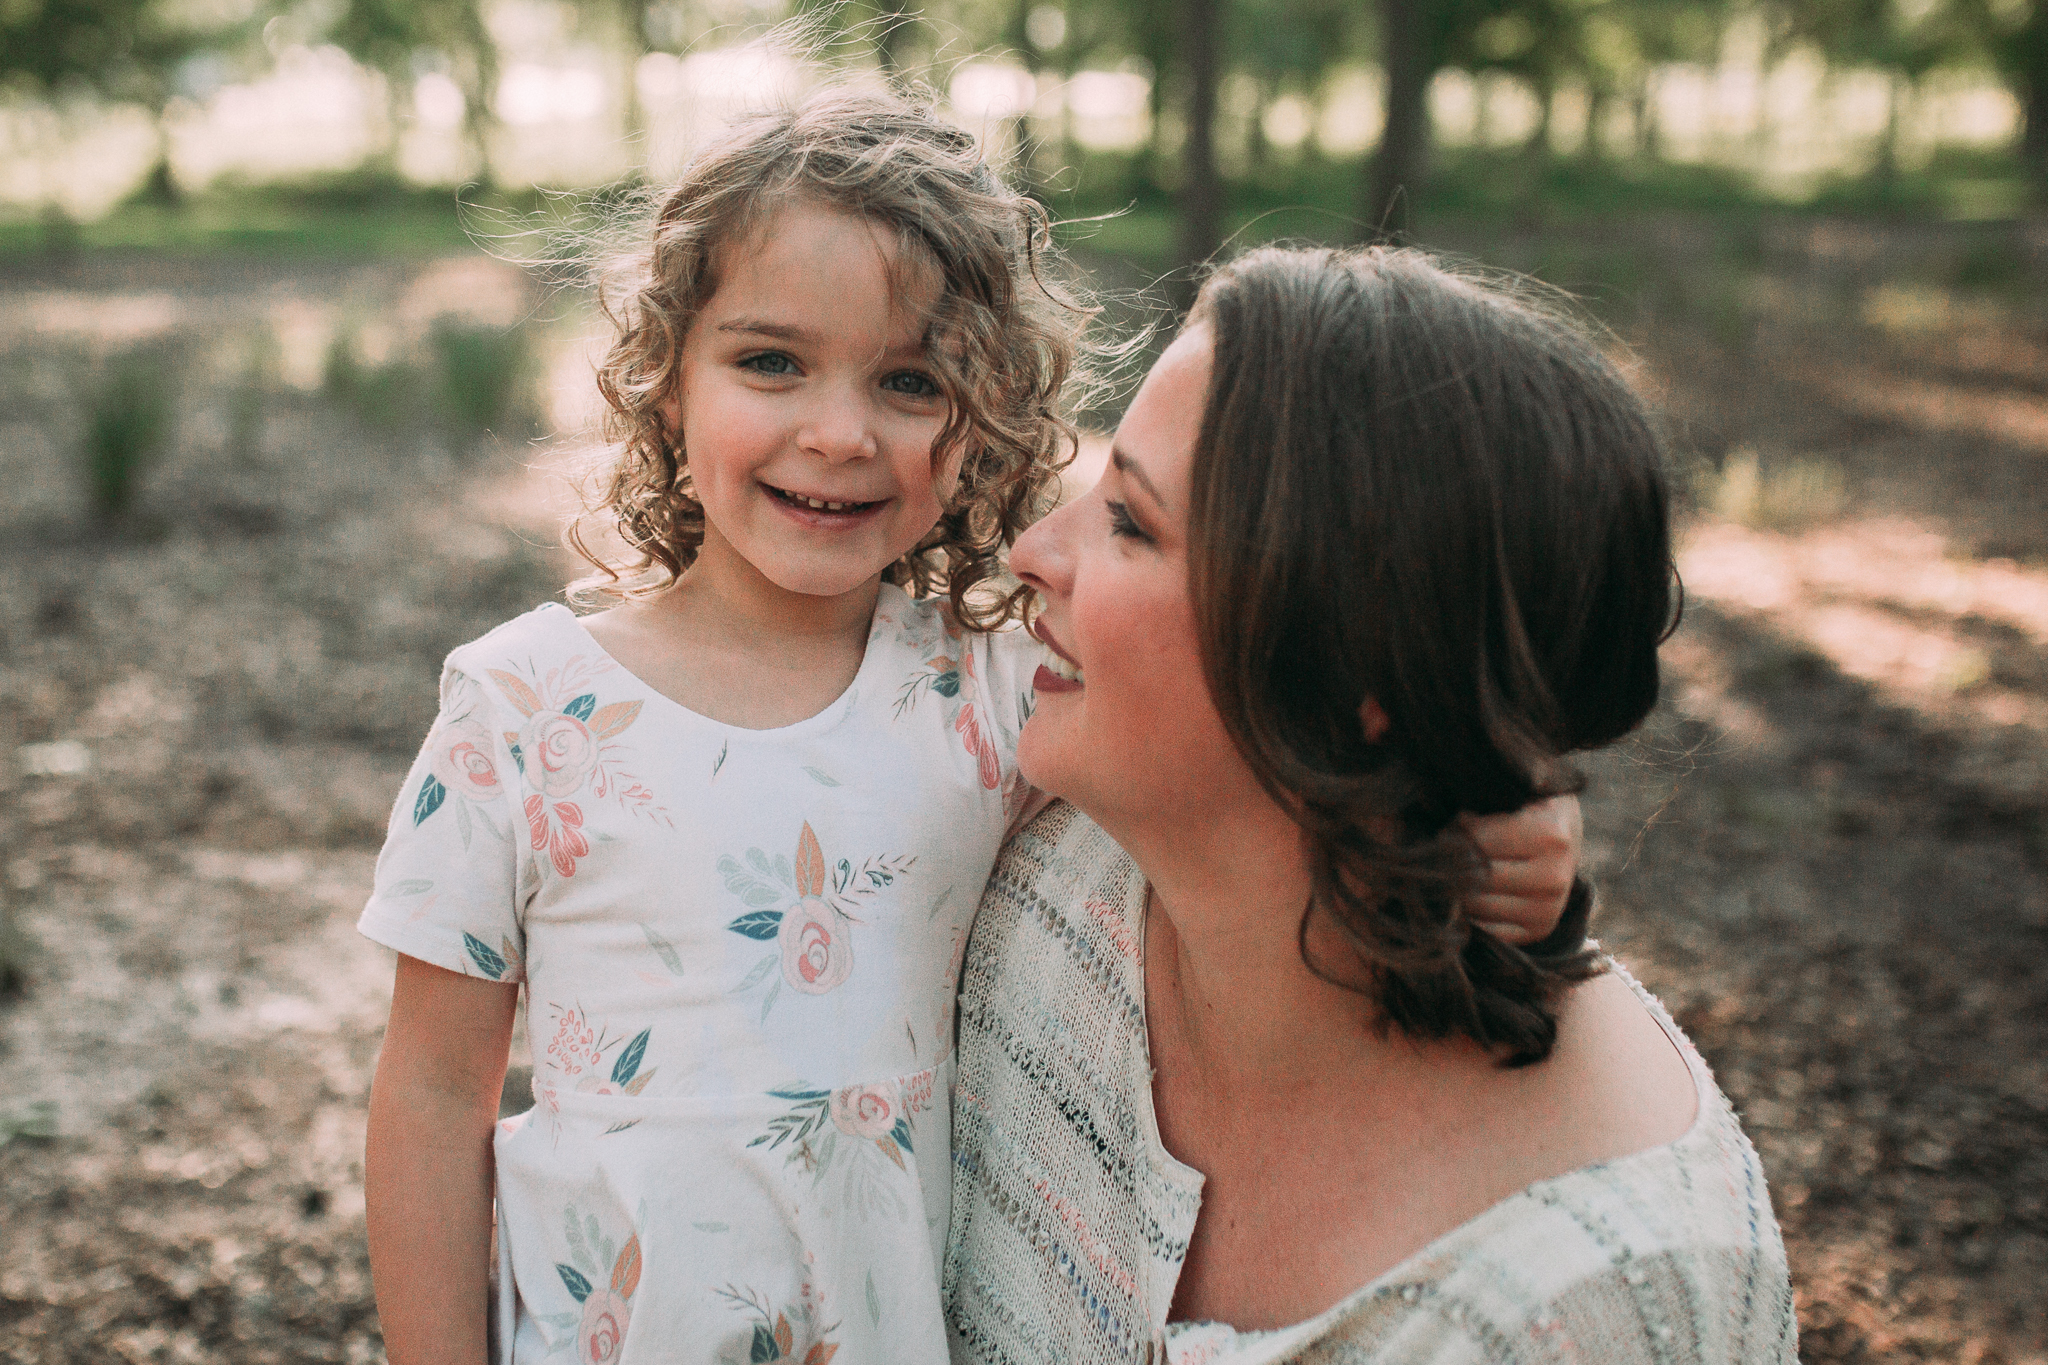 mother daughter outdoor sunset golden hour The Barn at One Loudoun Ashburn Northern Virginia Liifestyle Documentary Family Marti Austin Photography